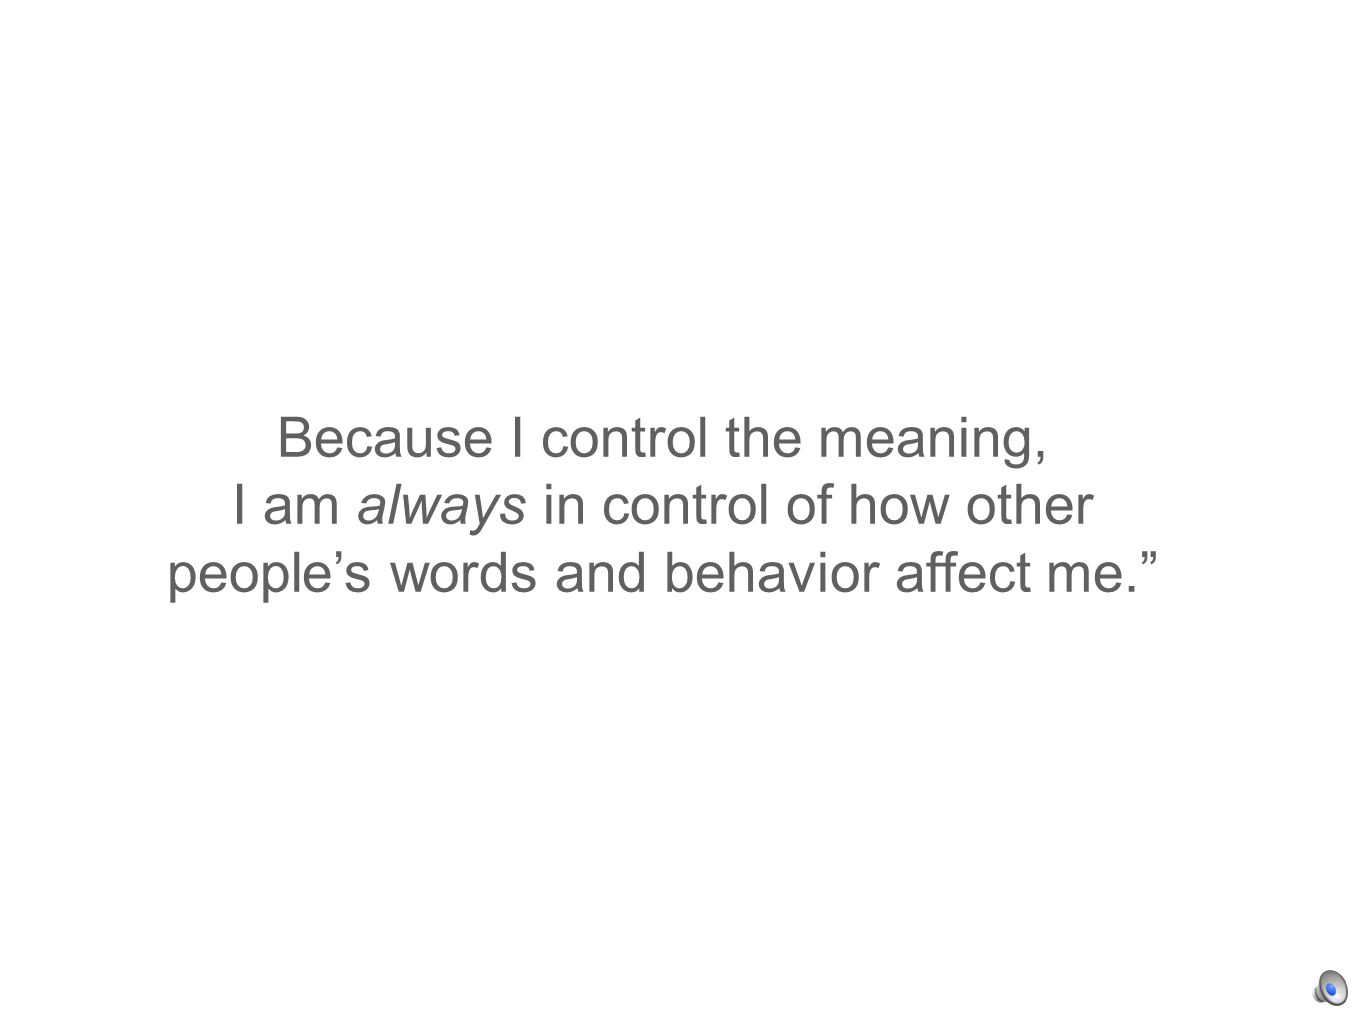 Because I control the meaning, I am always in control of how other peoples words and behavior affect me.